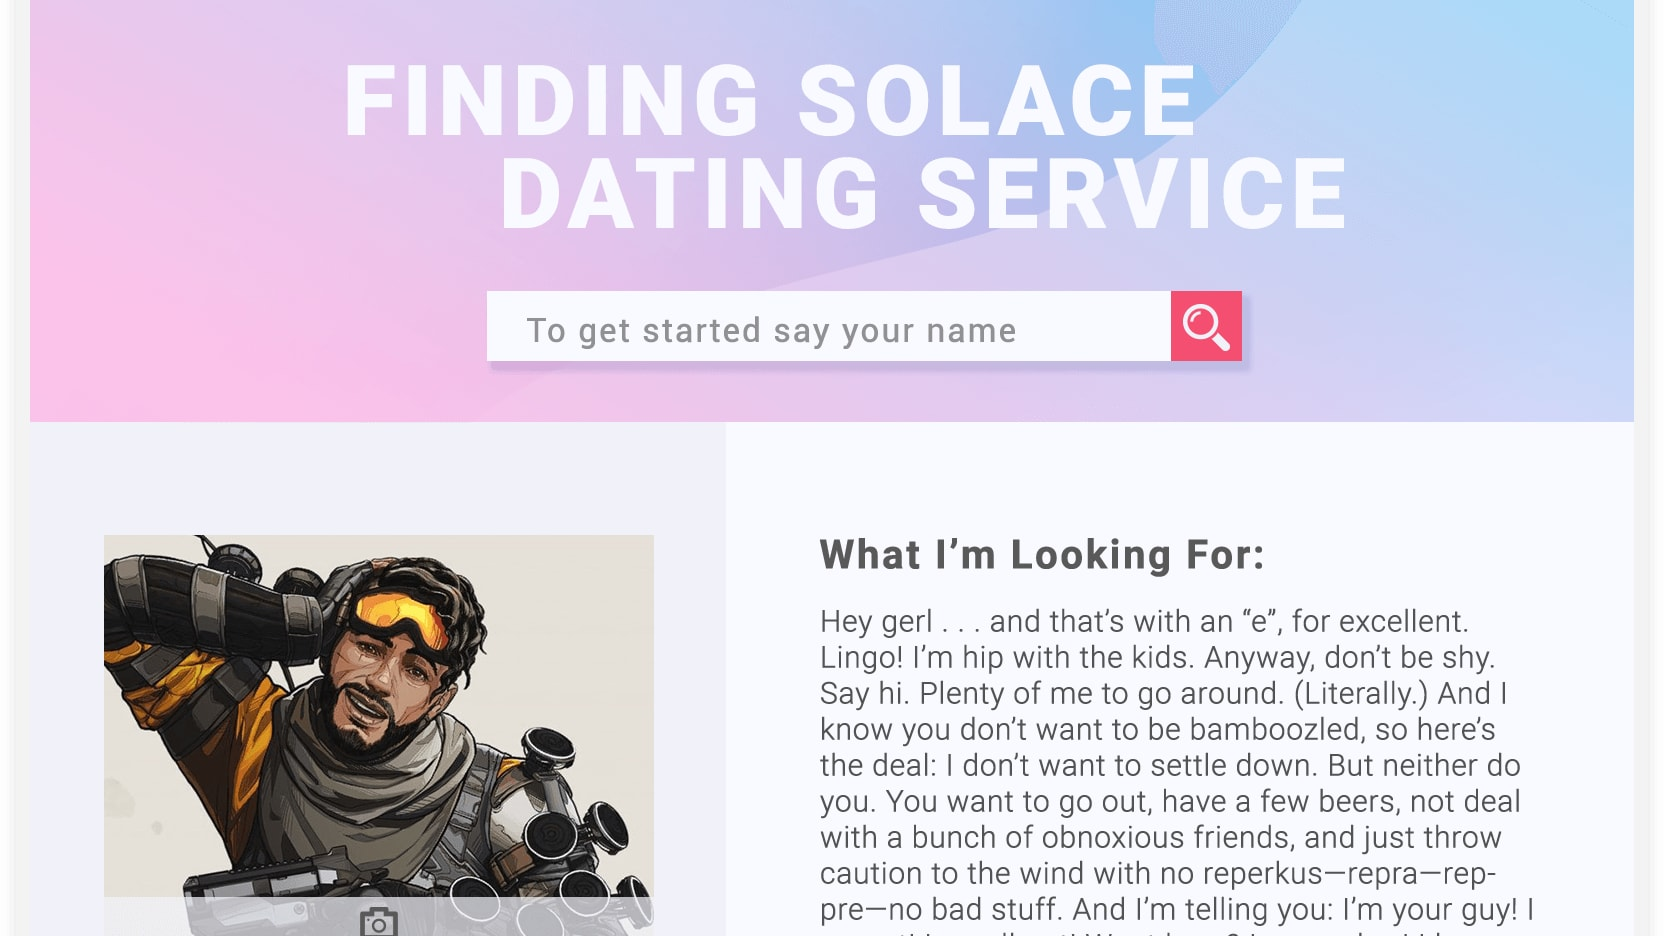 Apex Legends lore expands with the reveal of Mirage's dating profile.